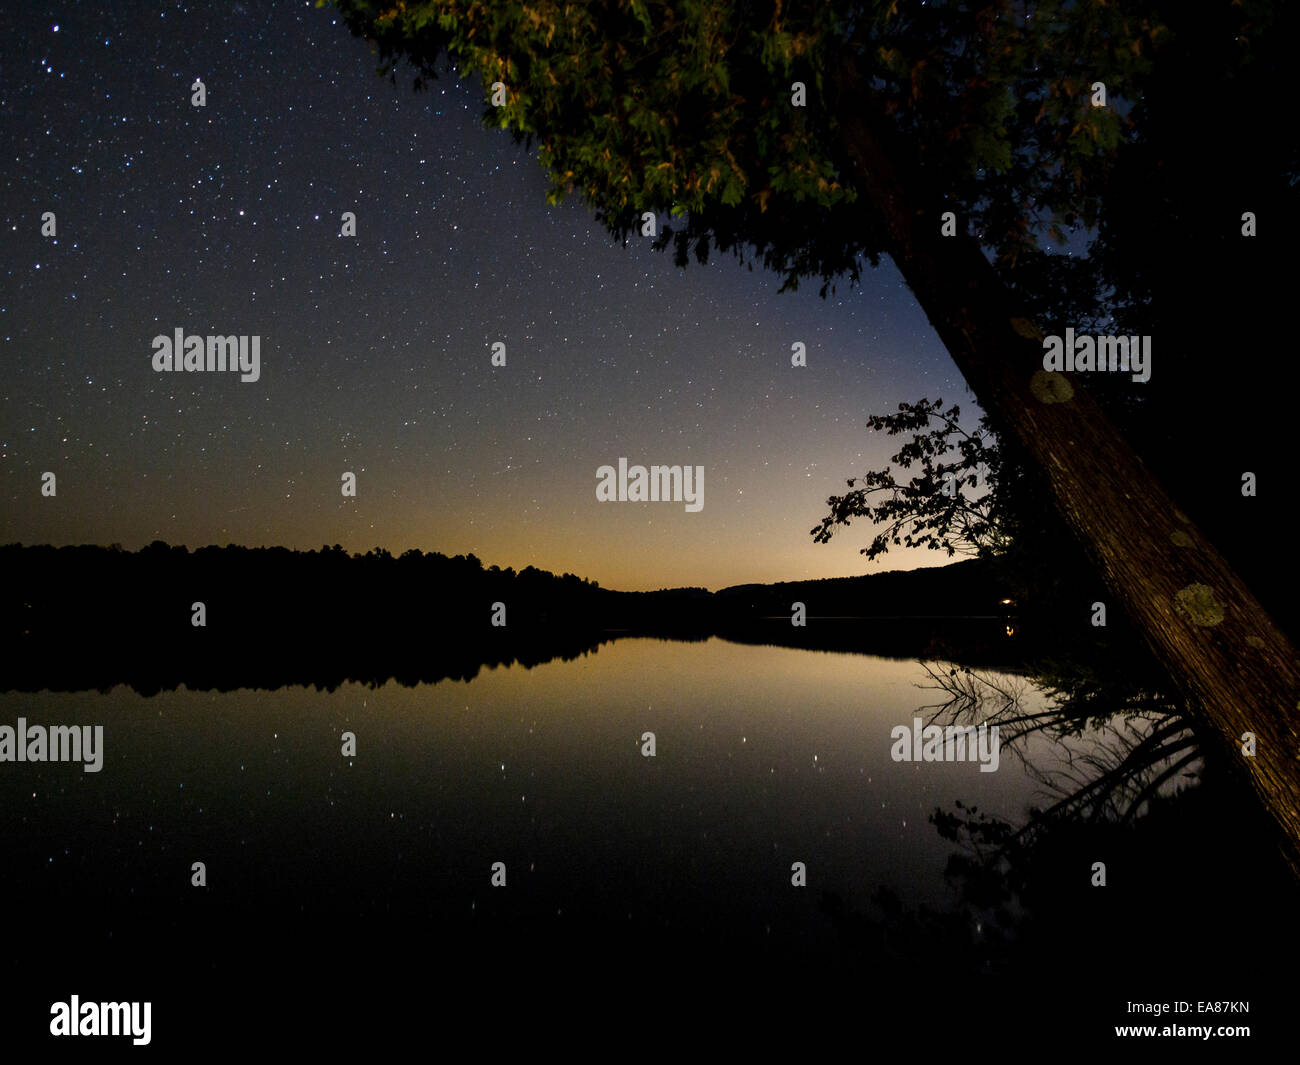 Ottawa Glow on a Starry Night. Stars reflect in a glassy lake in this long exposure. The yellow glow of distant - Stock Image